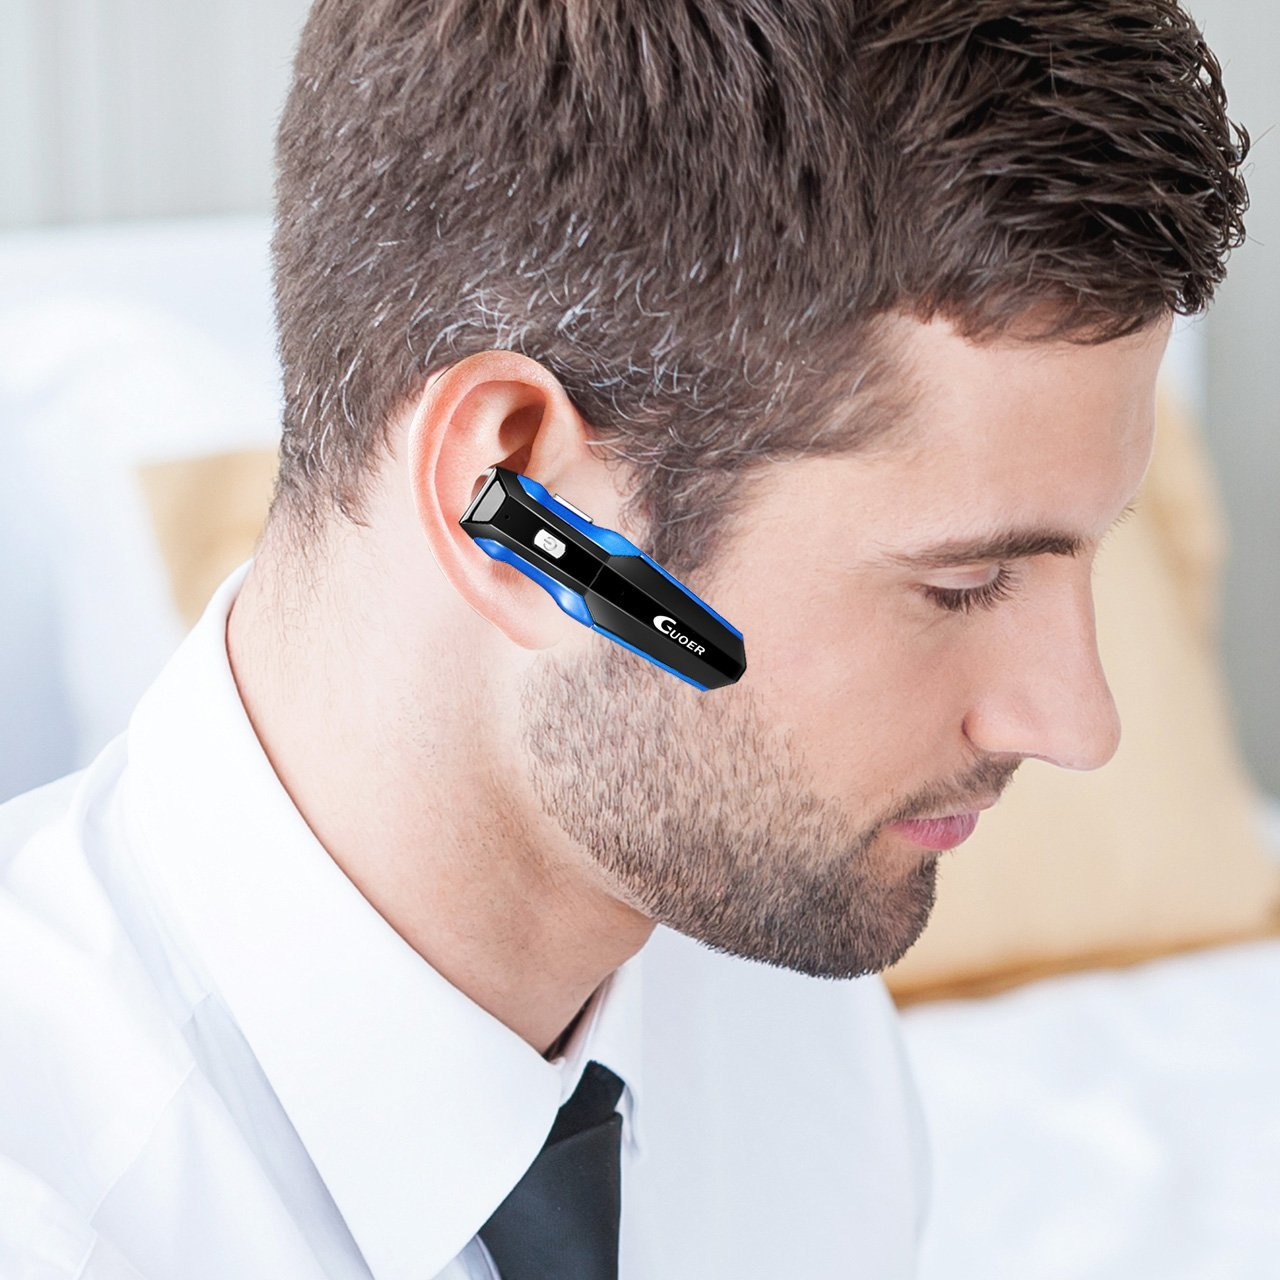 Bluetooth Headset with Backup Battery